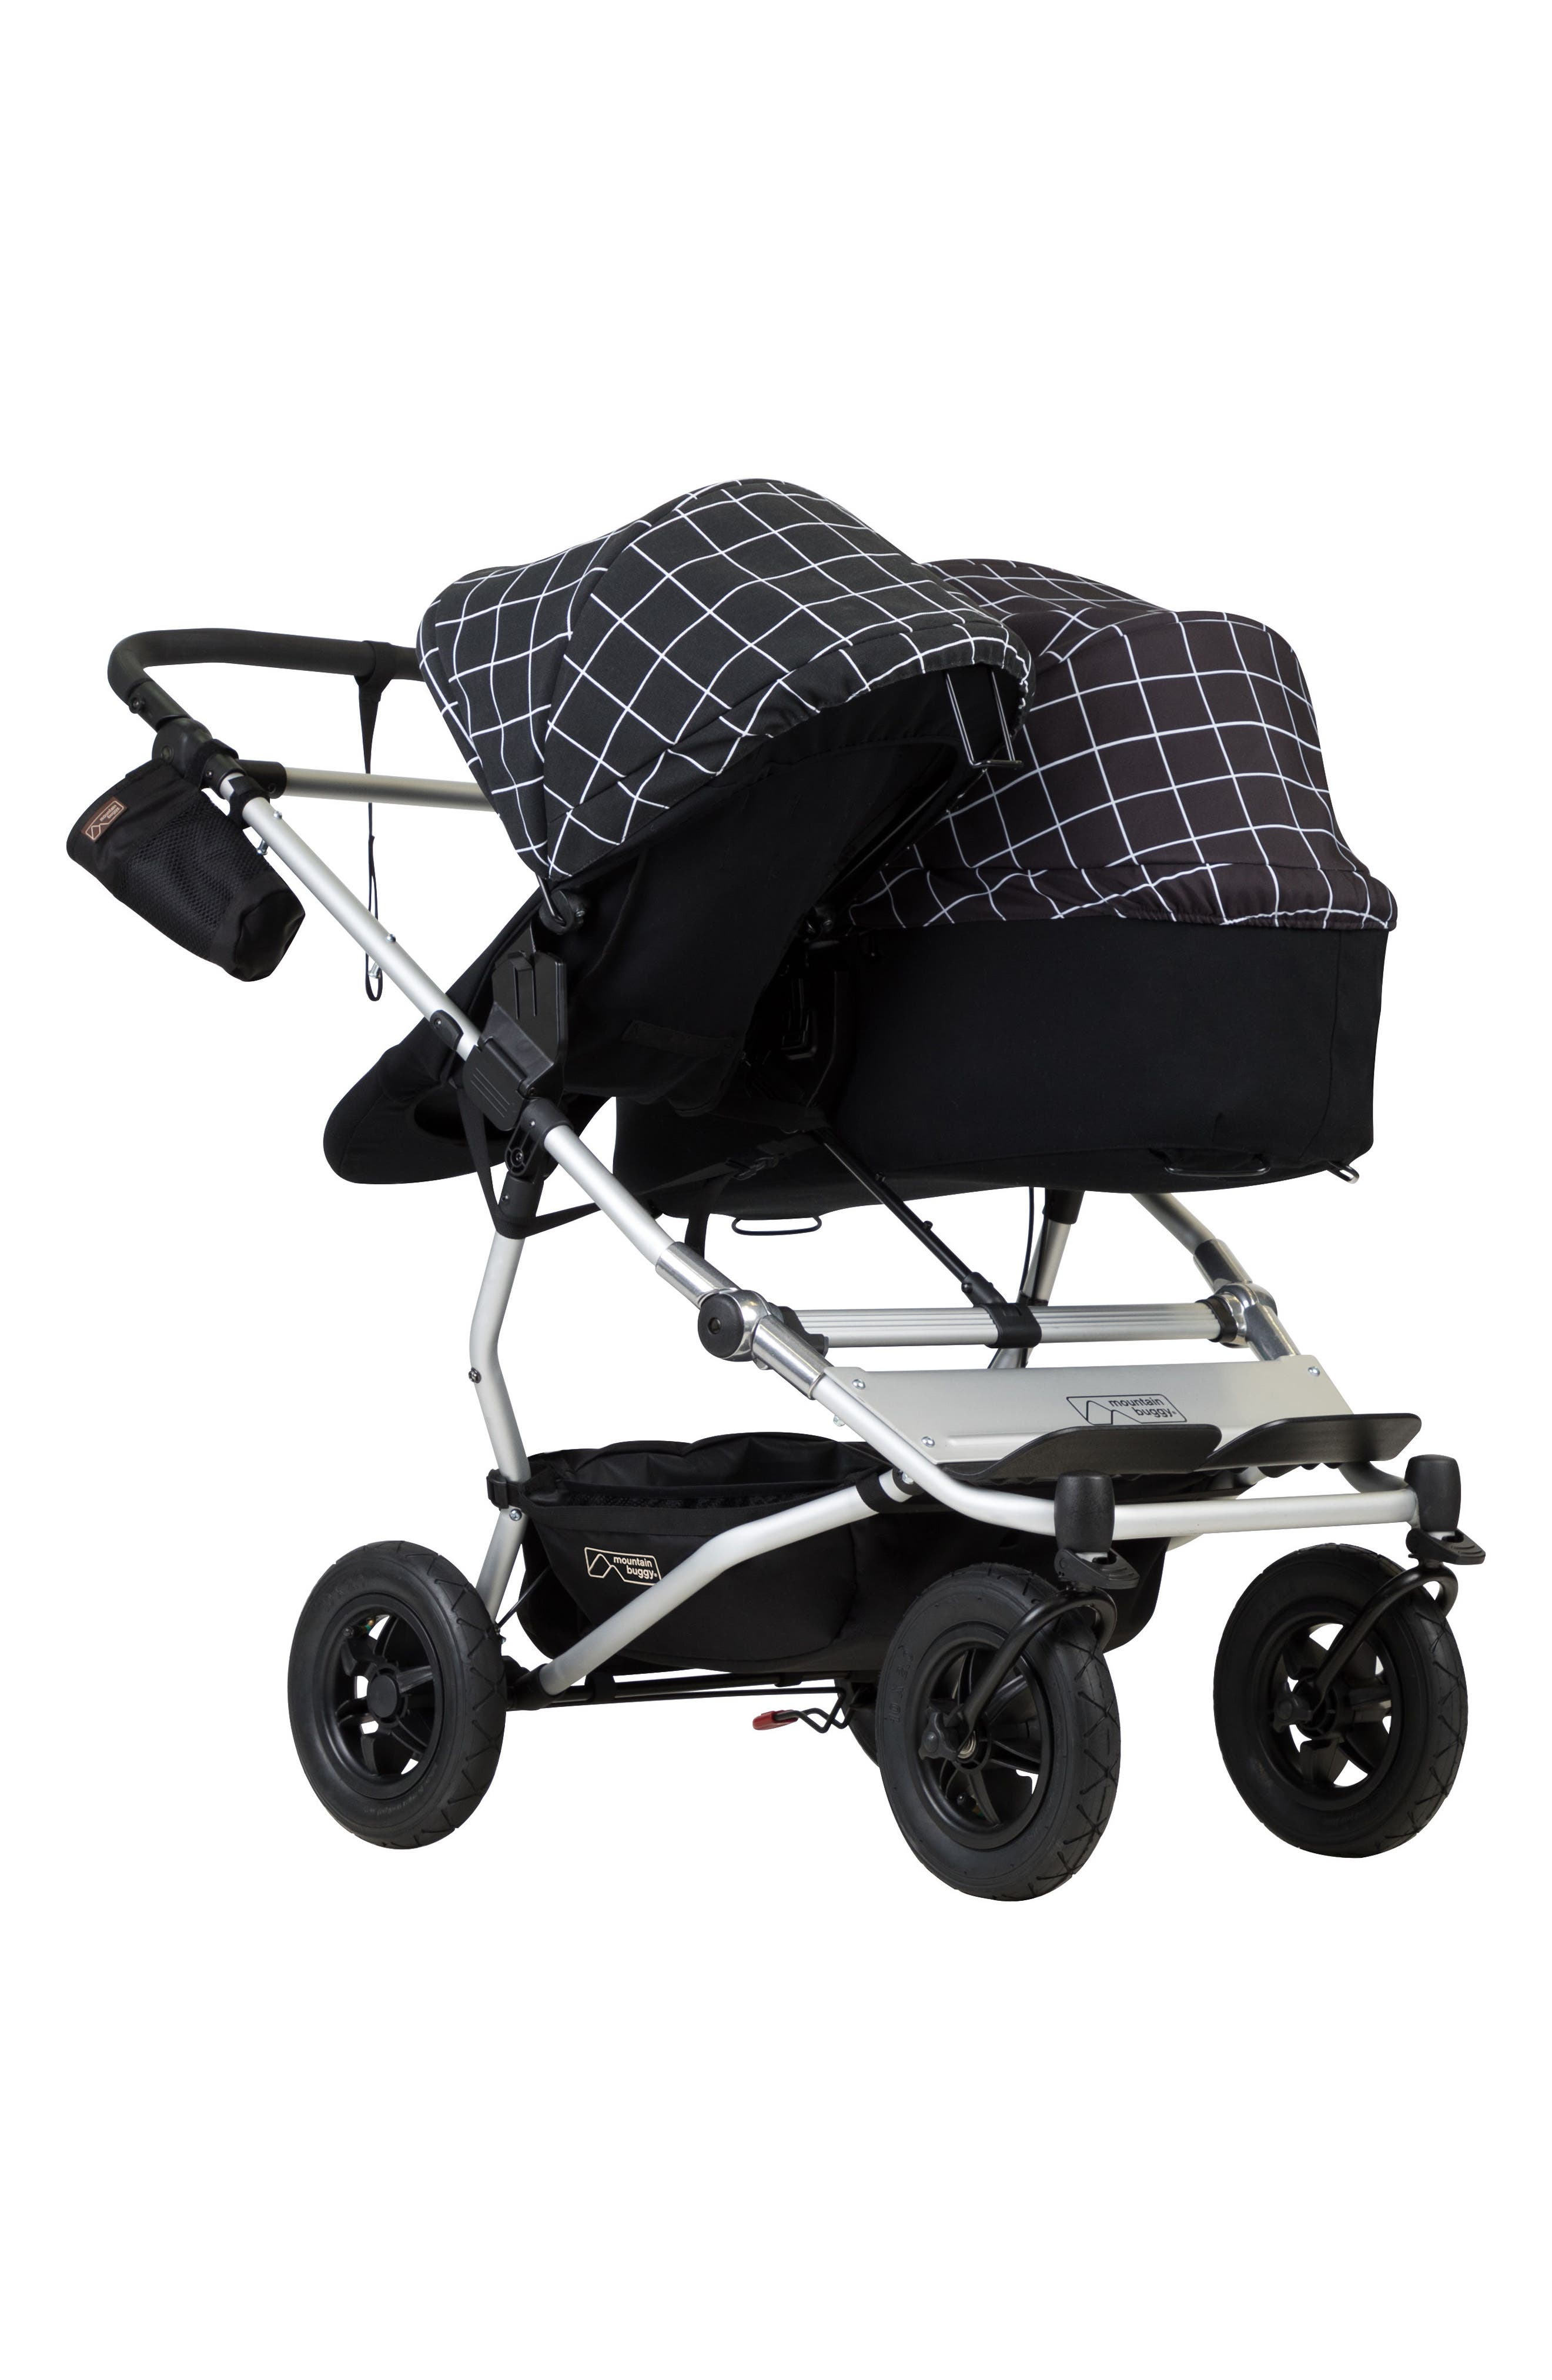 2017 Carrycot Base & Fabric Set for Duet Stroller,                             Alternate thumbnail 4, color,                             GRID